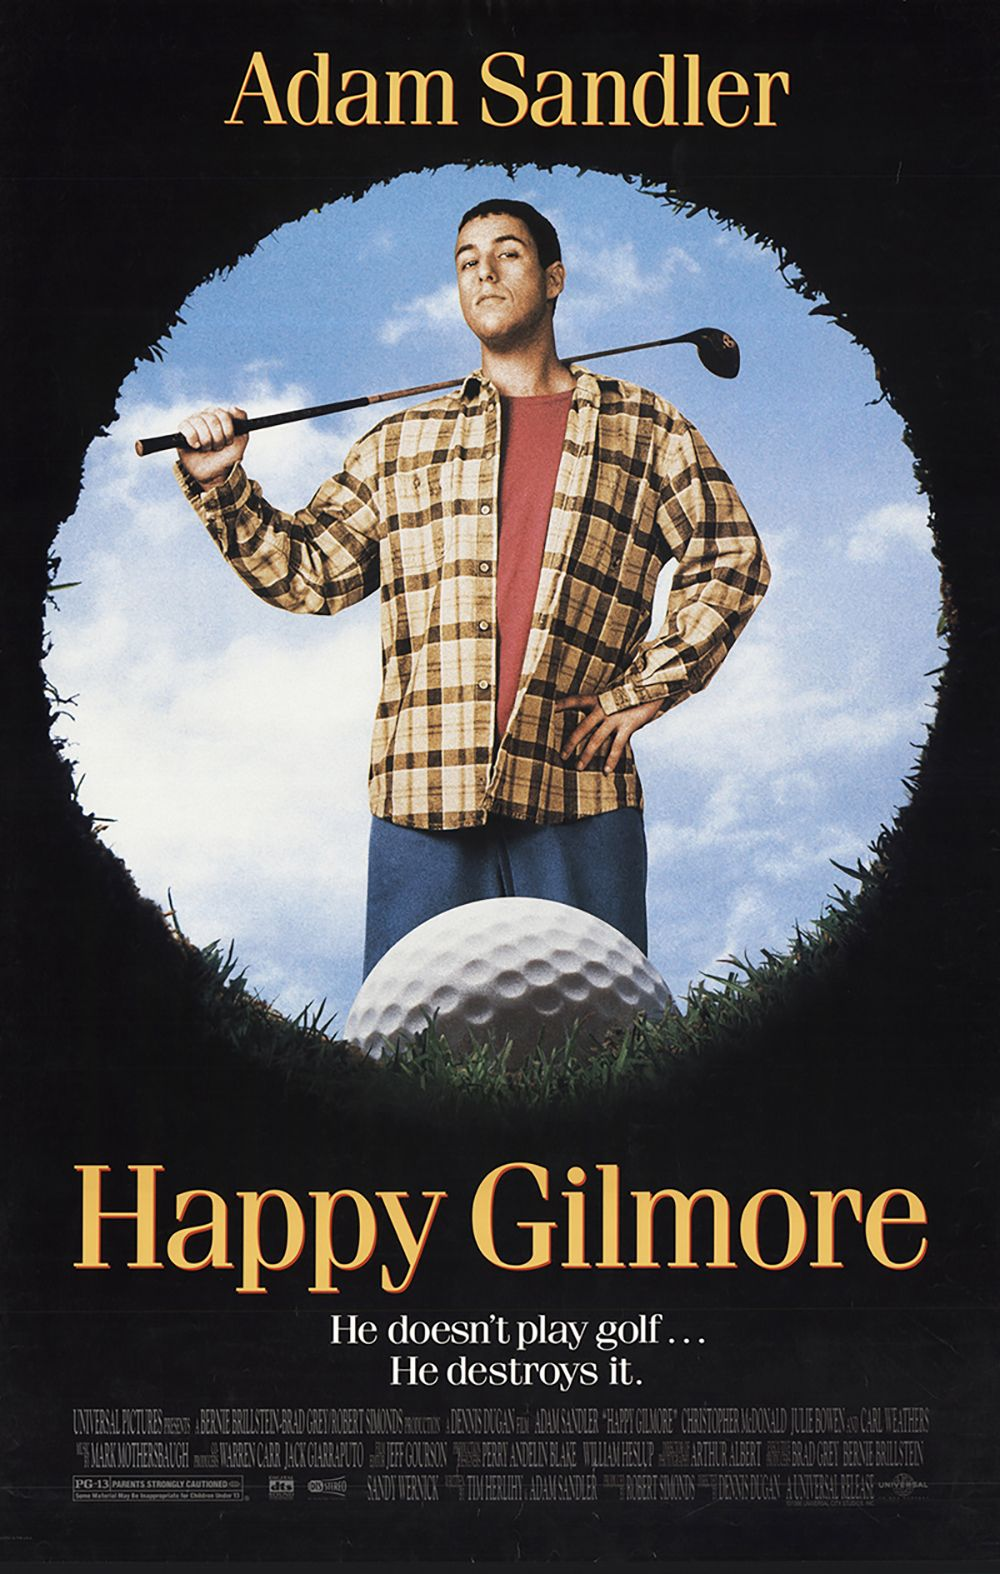 Happy Gilmore (1996) Adam Sandler stars as the film's namesake, an aspiring hockey player who discovers he has an bizarrely powerful golf swing. When his beloved grandmother loses her home, Happy joins the PGA tour in the hopes that he can win enough money to buy her house for her, but he has to beat his douchey rival, Shooter McGavin (Christopher McDonald).